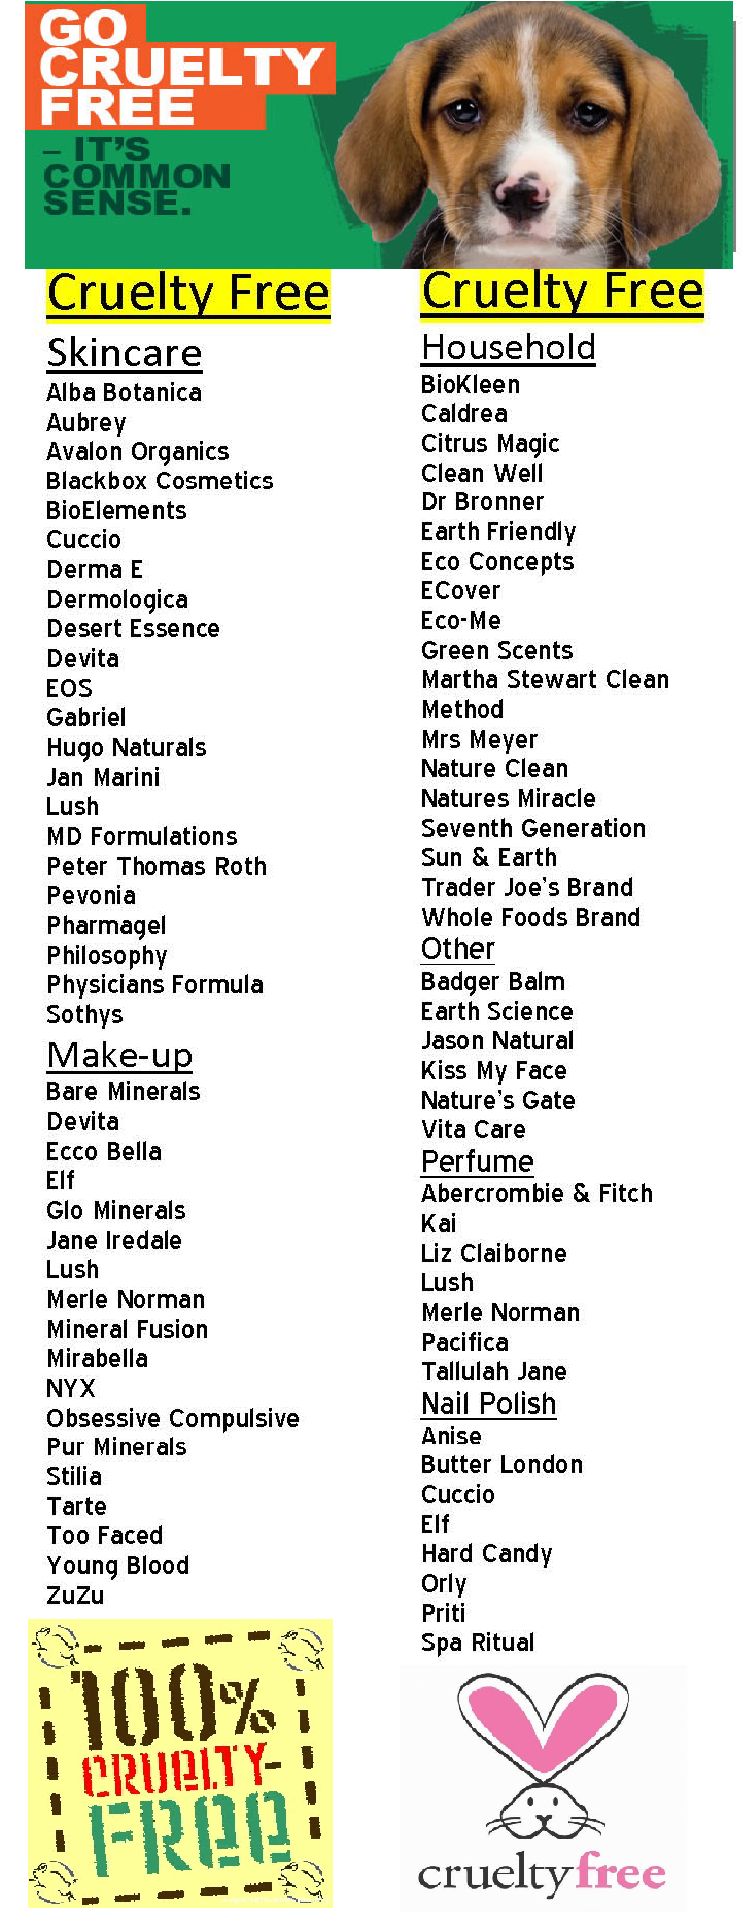 Support These Cruelty Free Products No Need To Test On Animals Share This Save It And Print It S Unscrupulous Unconscionable Testing Of Animals Anima